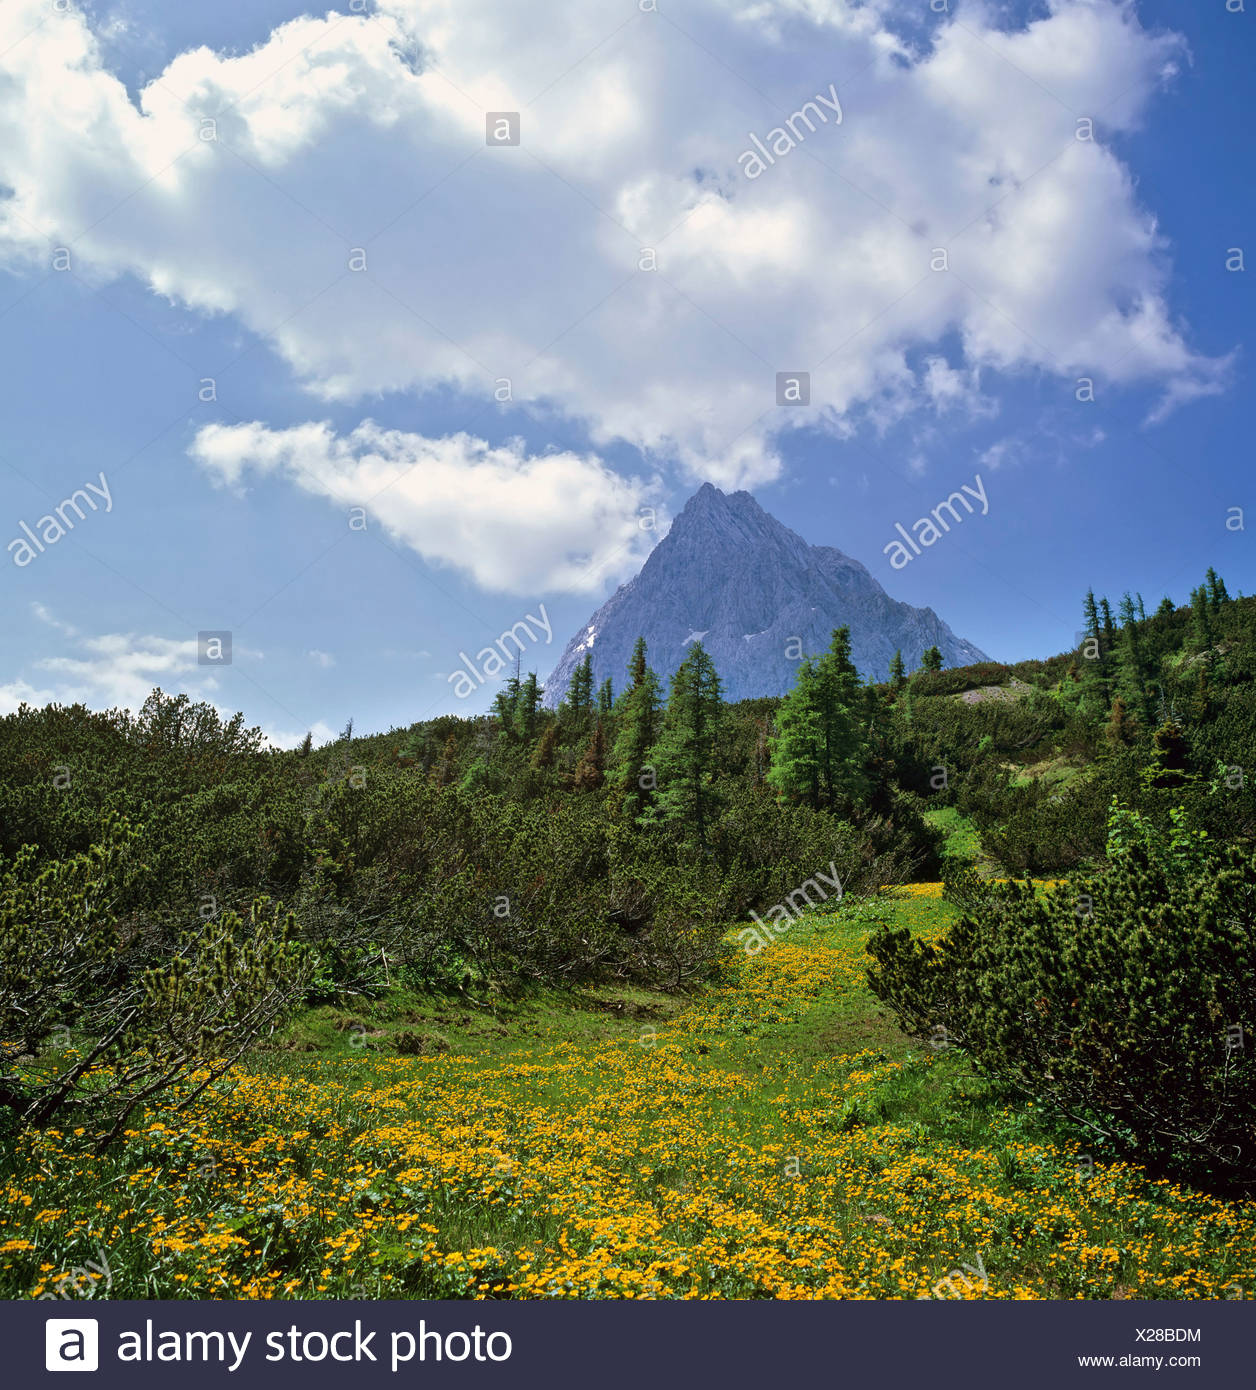 Mountain meadow and Mt. Hochkoenig, Berchtesgadener Alps, Salzburger Land, Austria, Europe - Stock Image